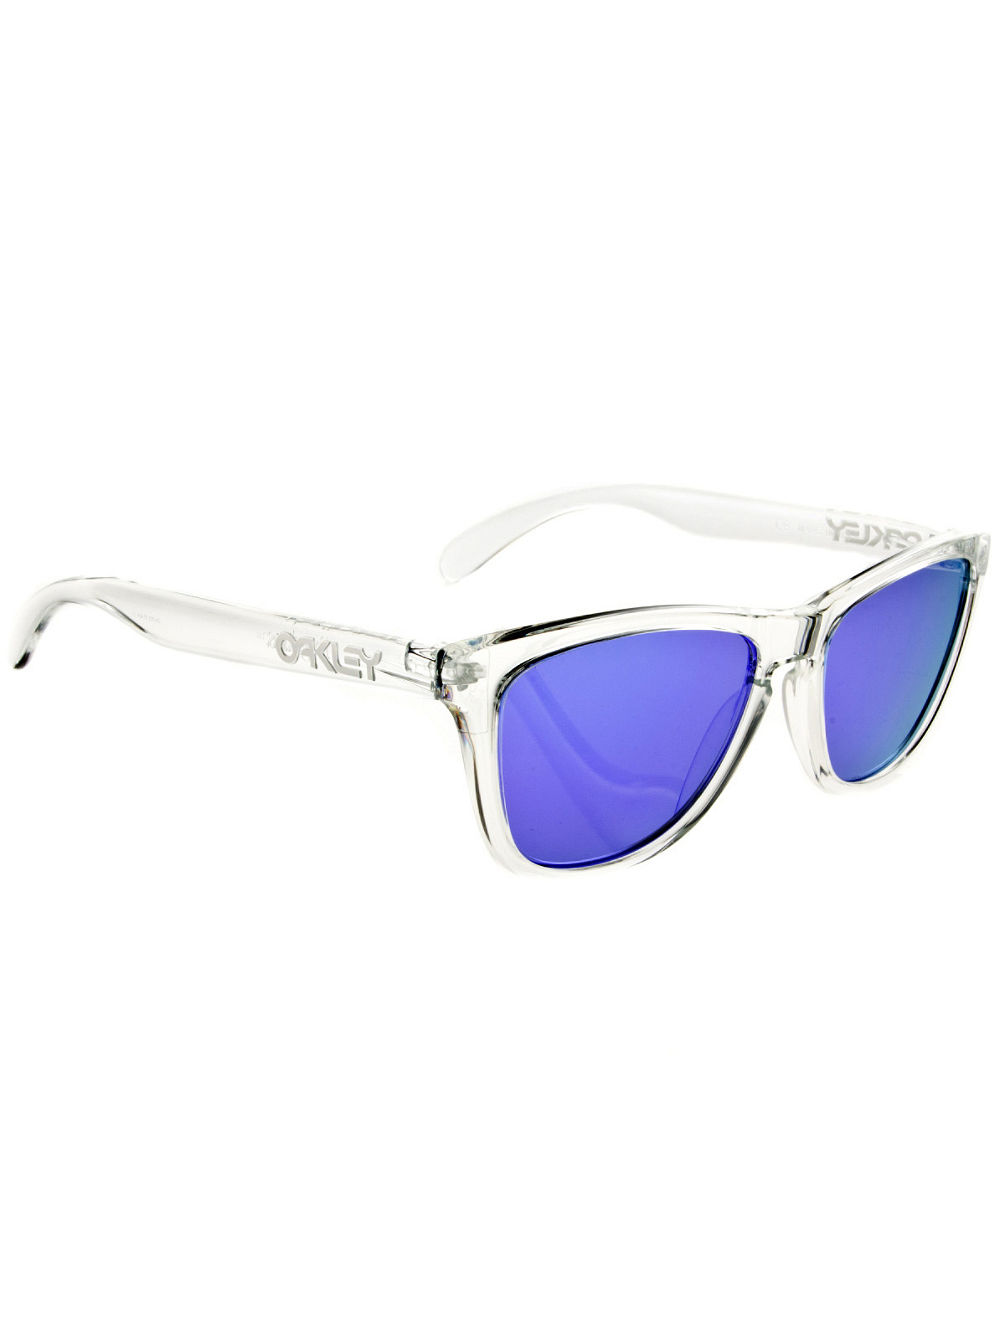 Frogskin polished clear Sonnenbrille